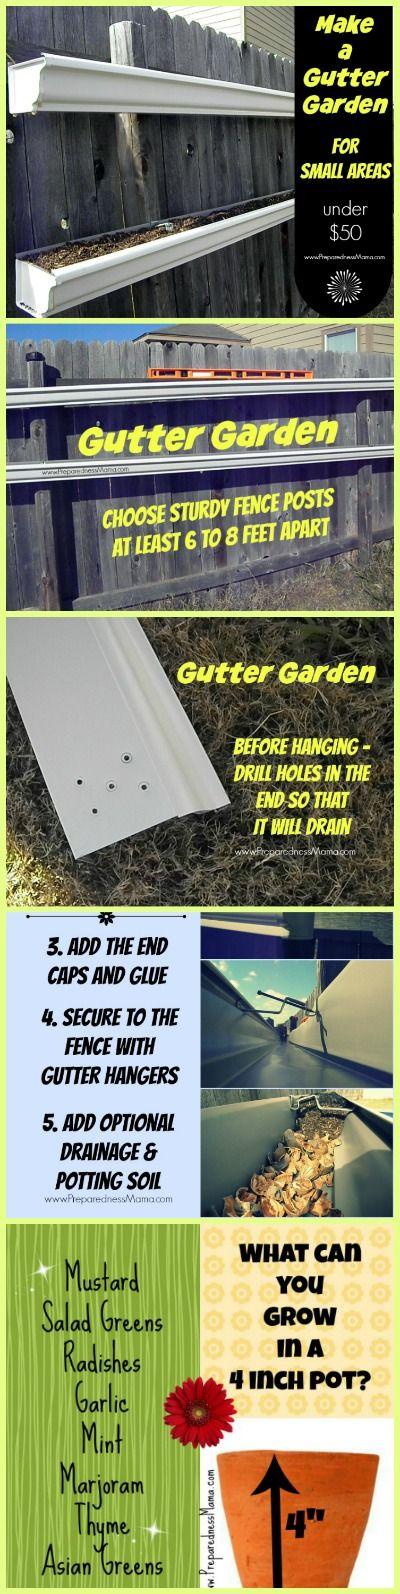 DIY gutter garden instructions. You'll be surprised what you can grow! | PreparednessMama